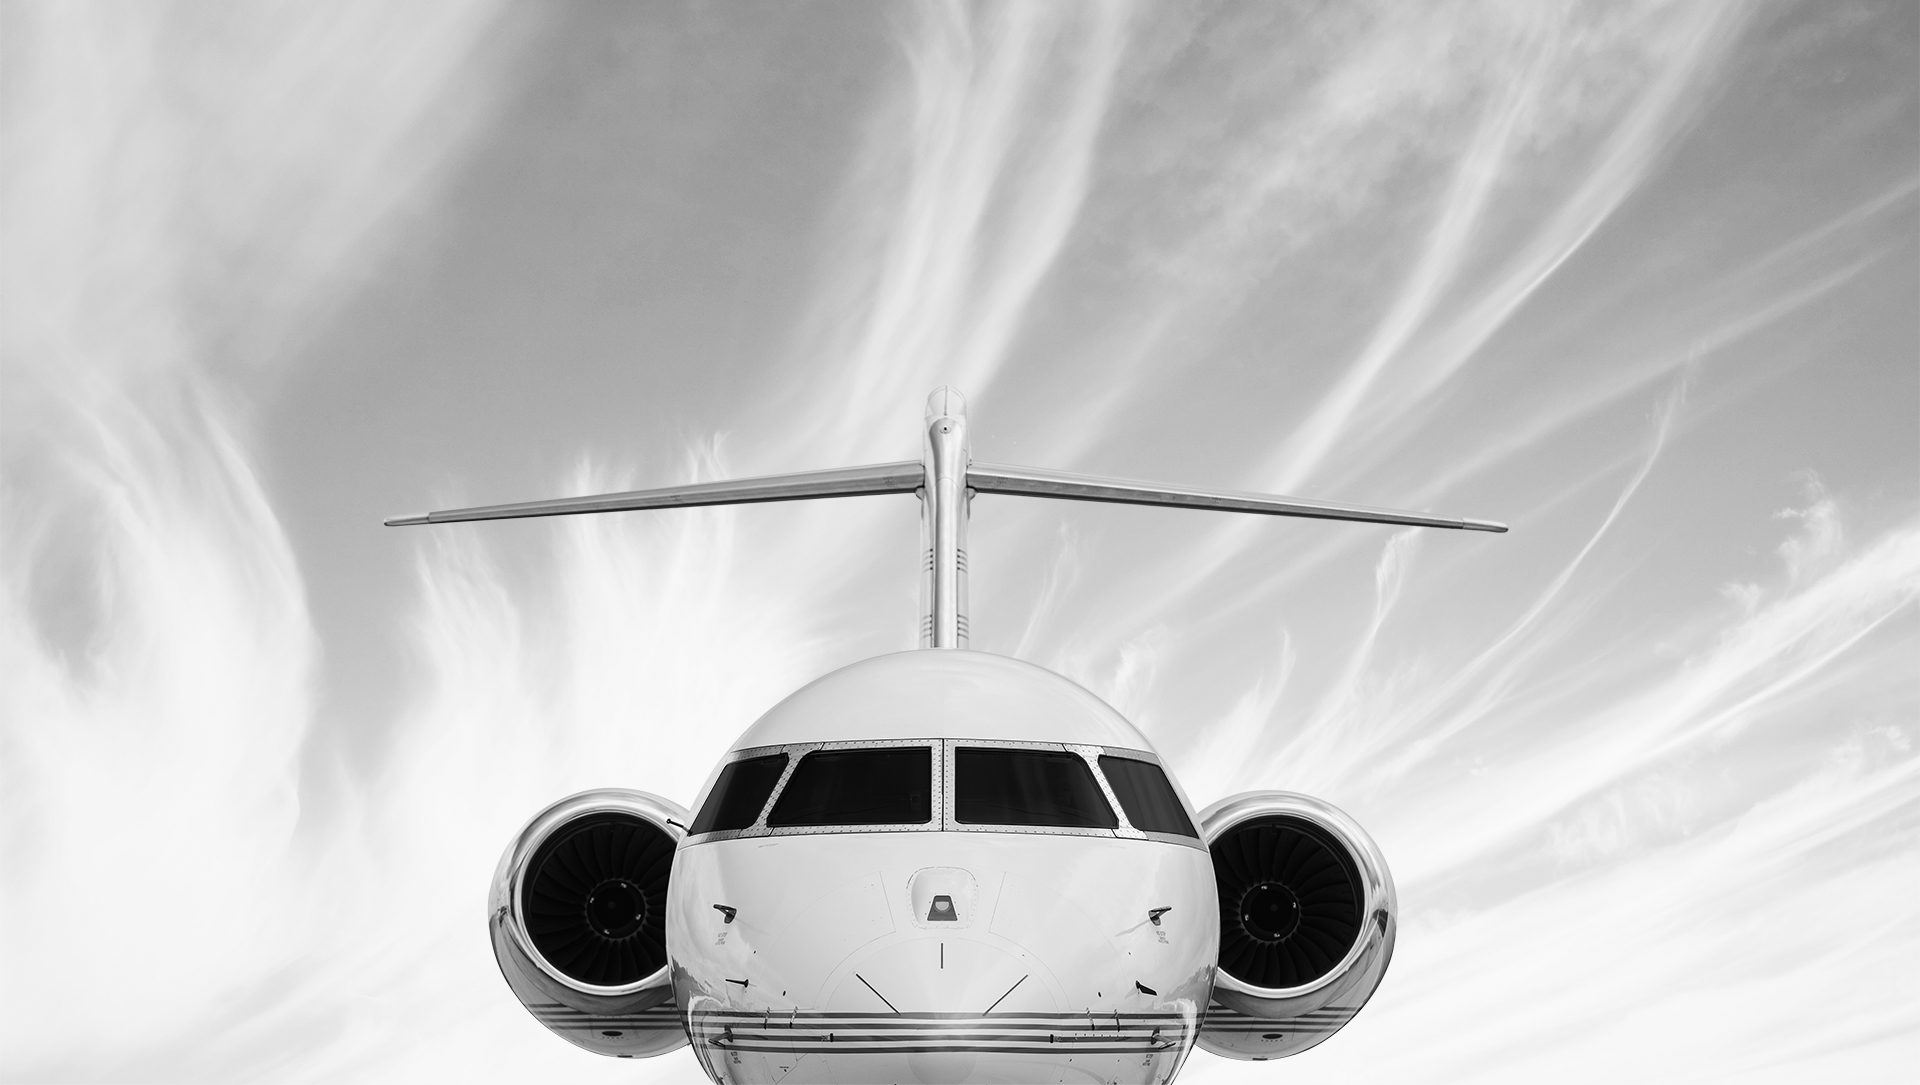 Jetcraft aviation marketing